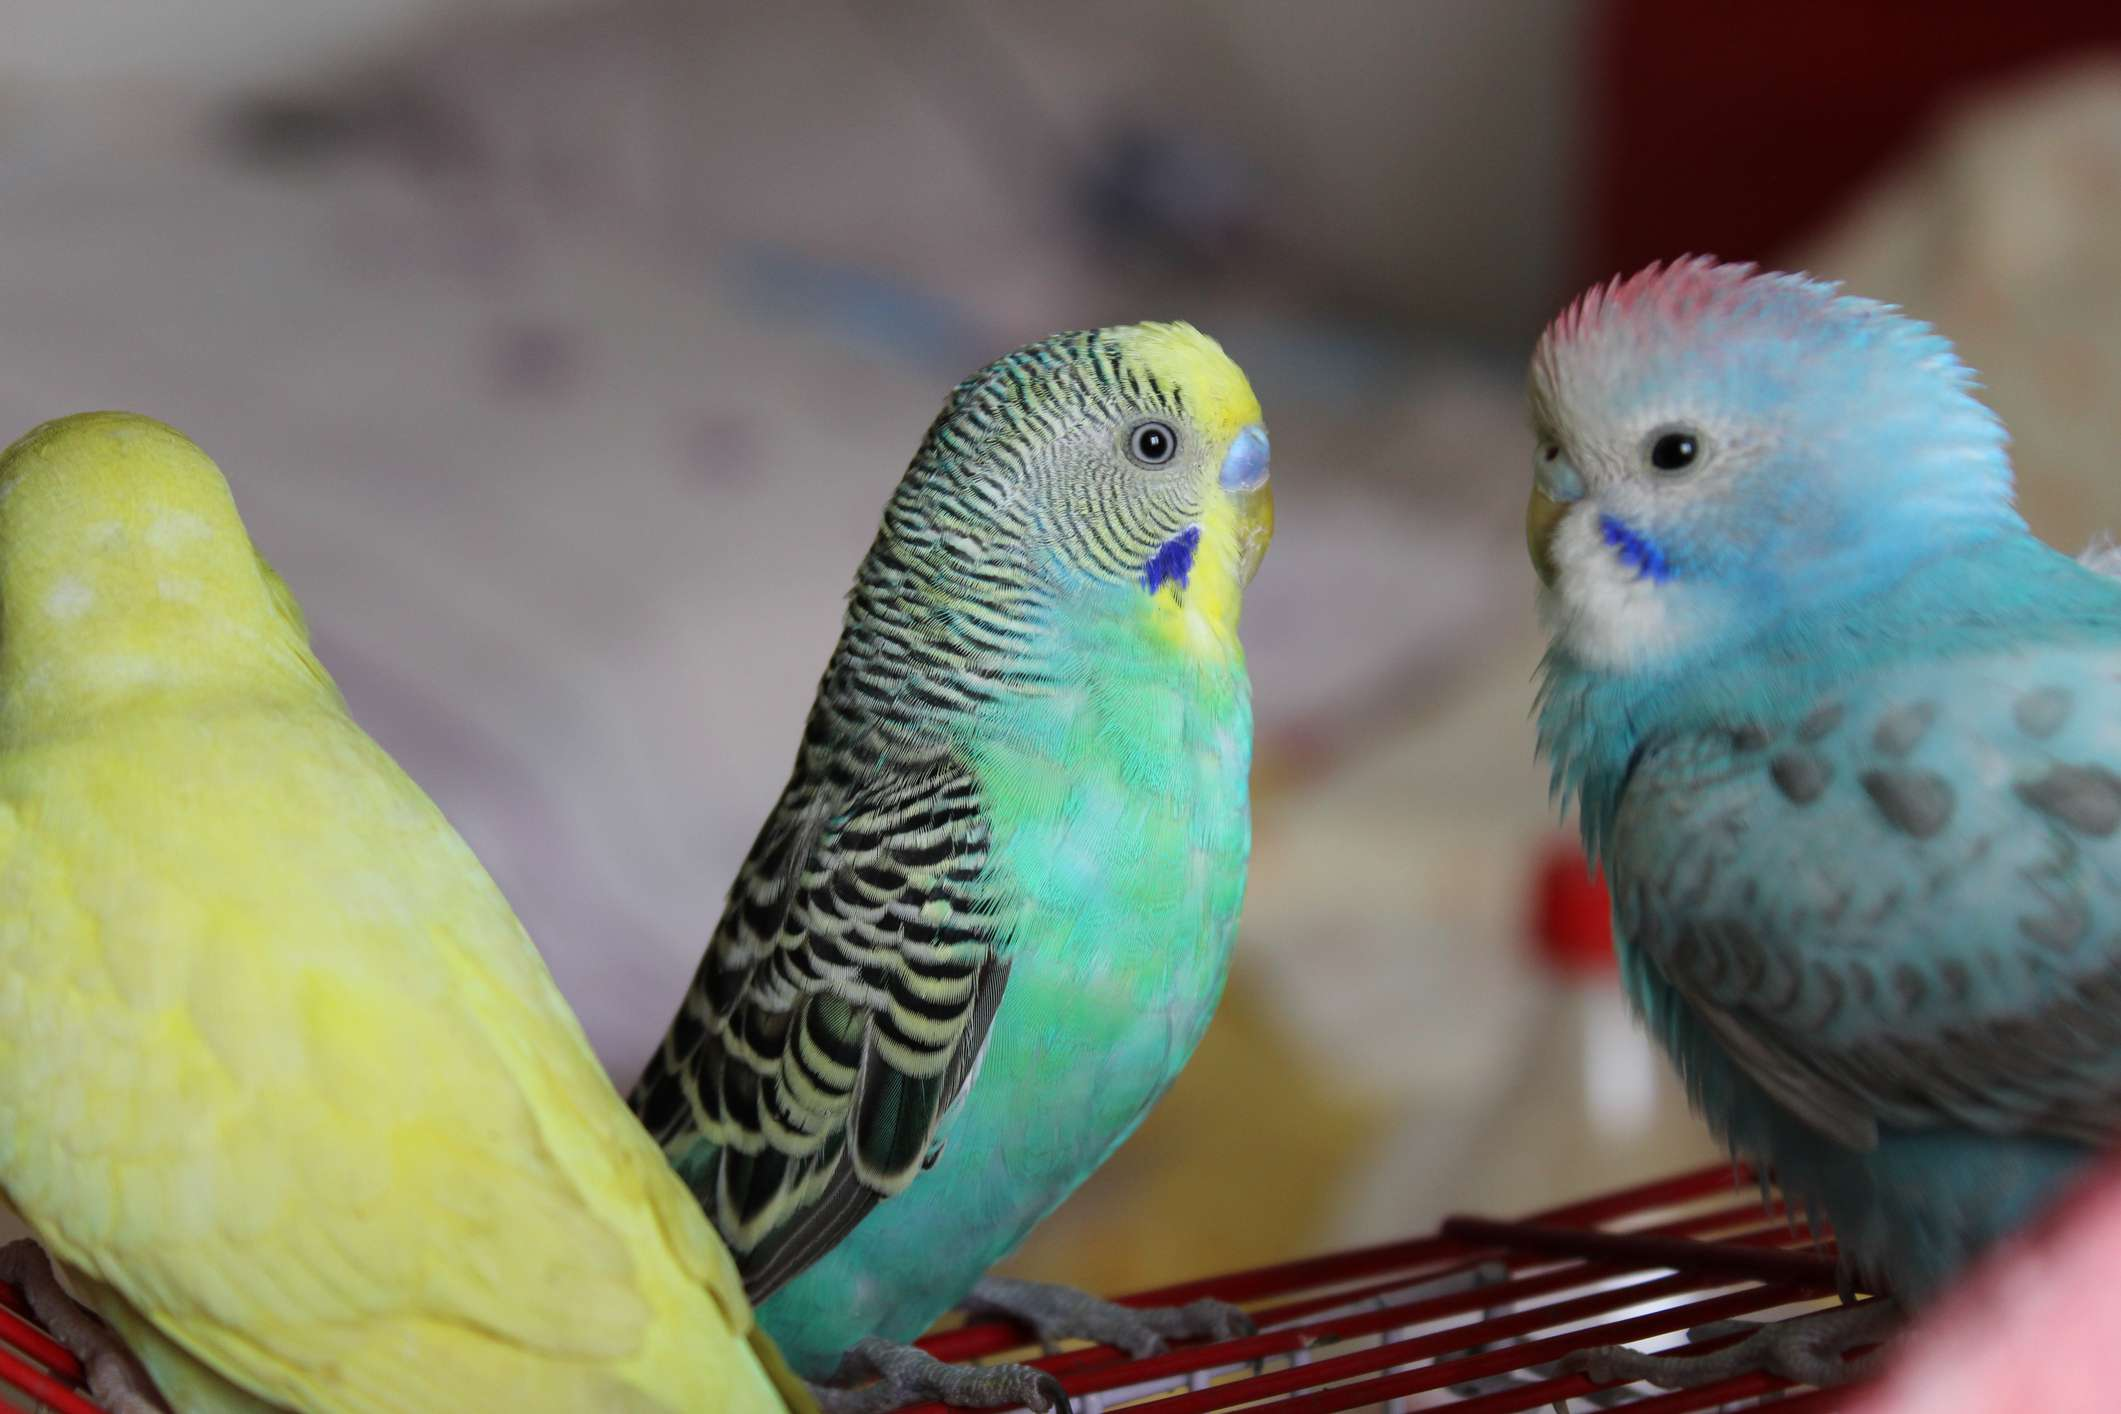 pet budgies standing together